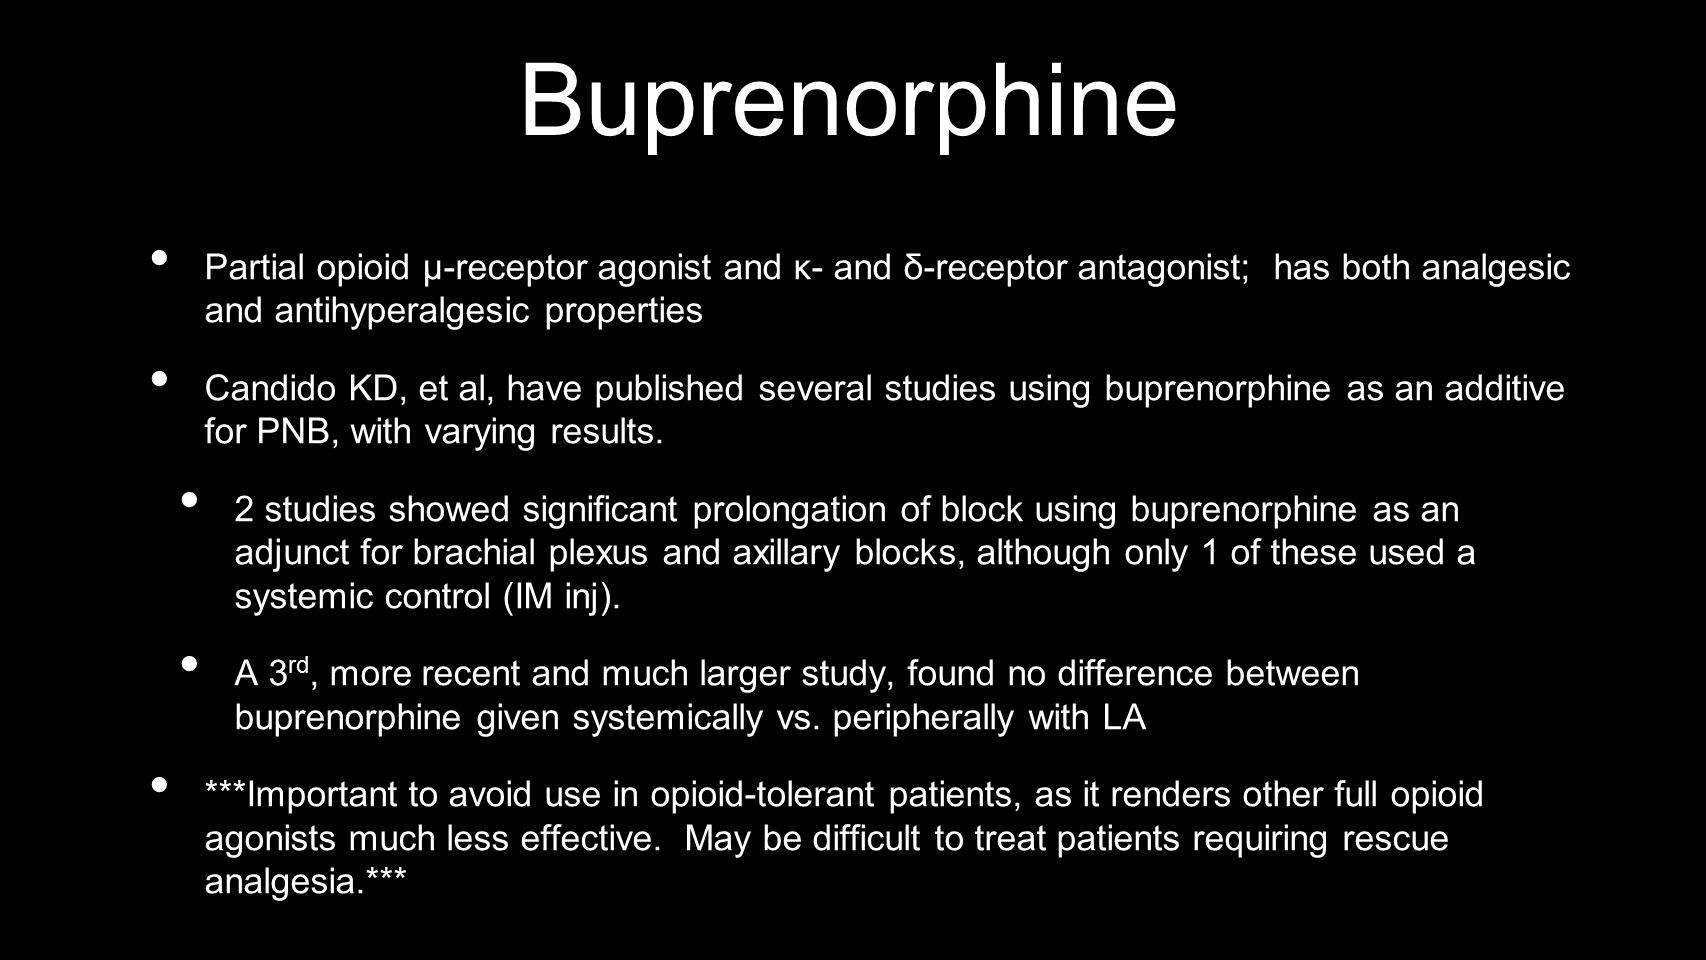 Buprenorphine Partial opioid μ-receptor agonist and κ- and δ-receptor antagonist; has both analgesic and antihyperalgesic properties Candido KD, et al, have published several studies using buprenorphine as an additive for PNB, with varying results.